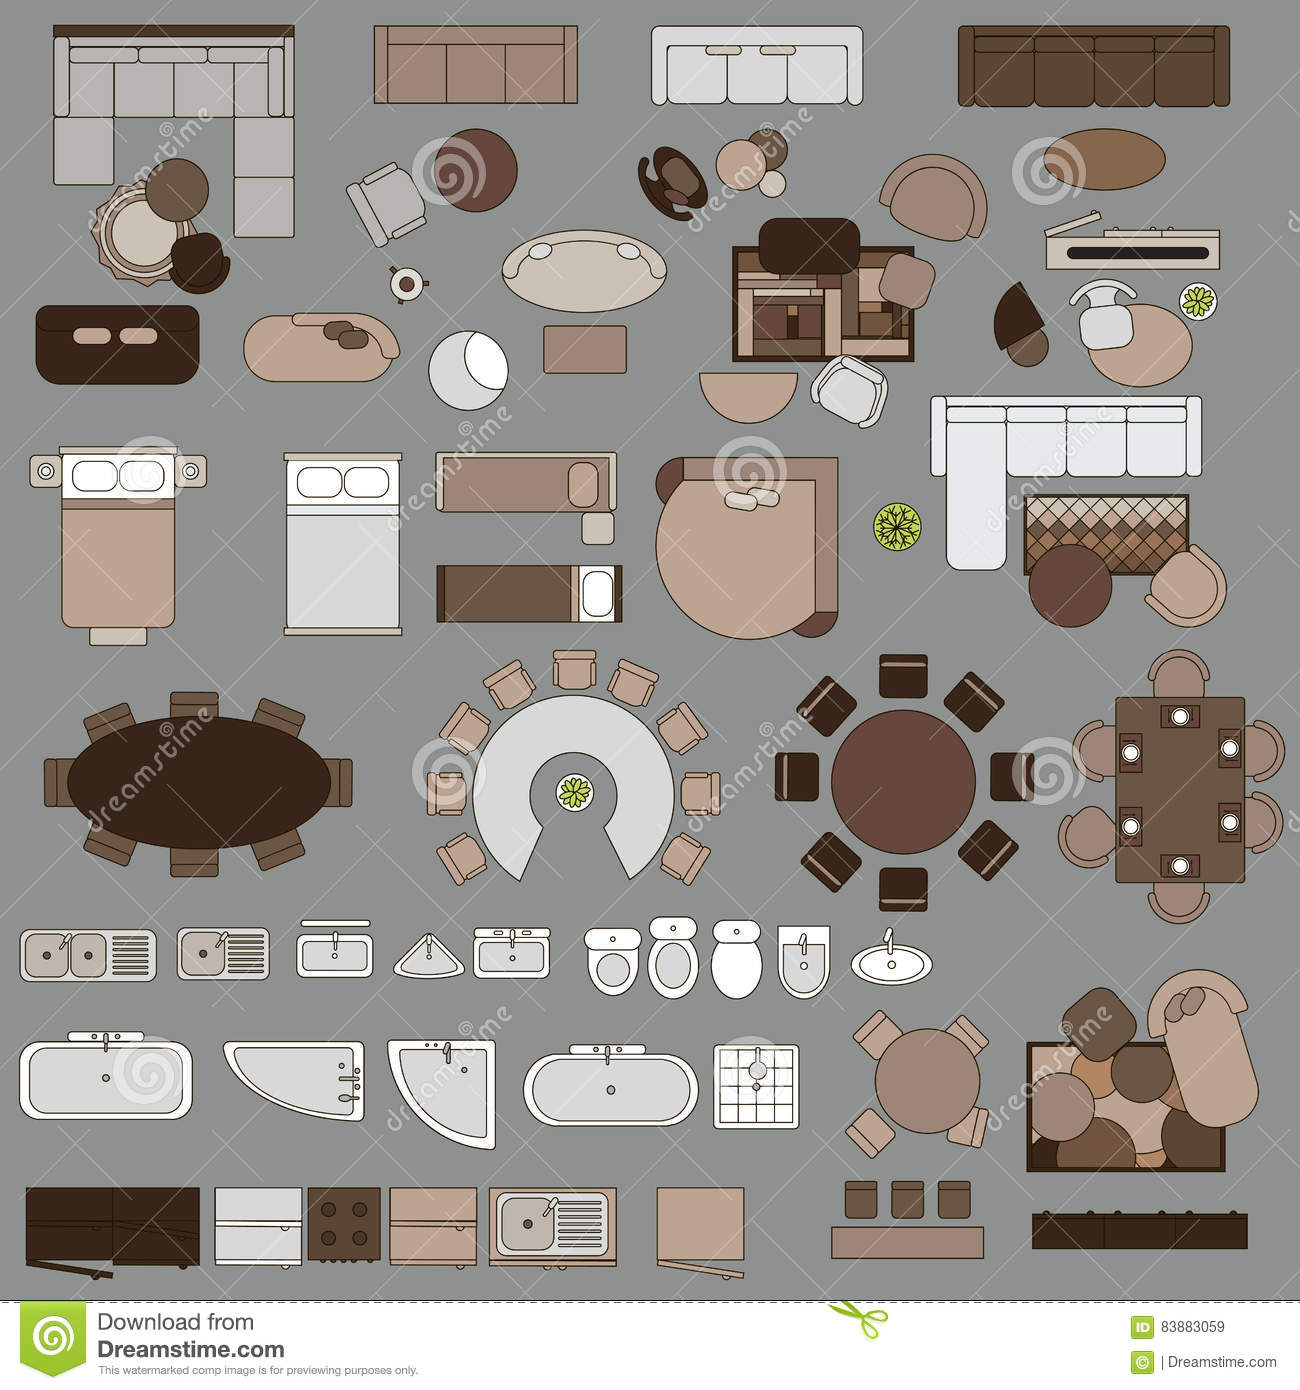 Furniture In Top View Stock Vector Illustration Of Interior 83883059